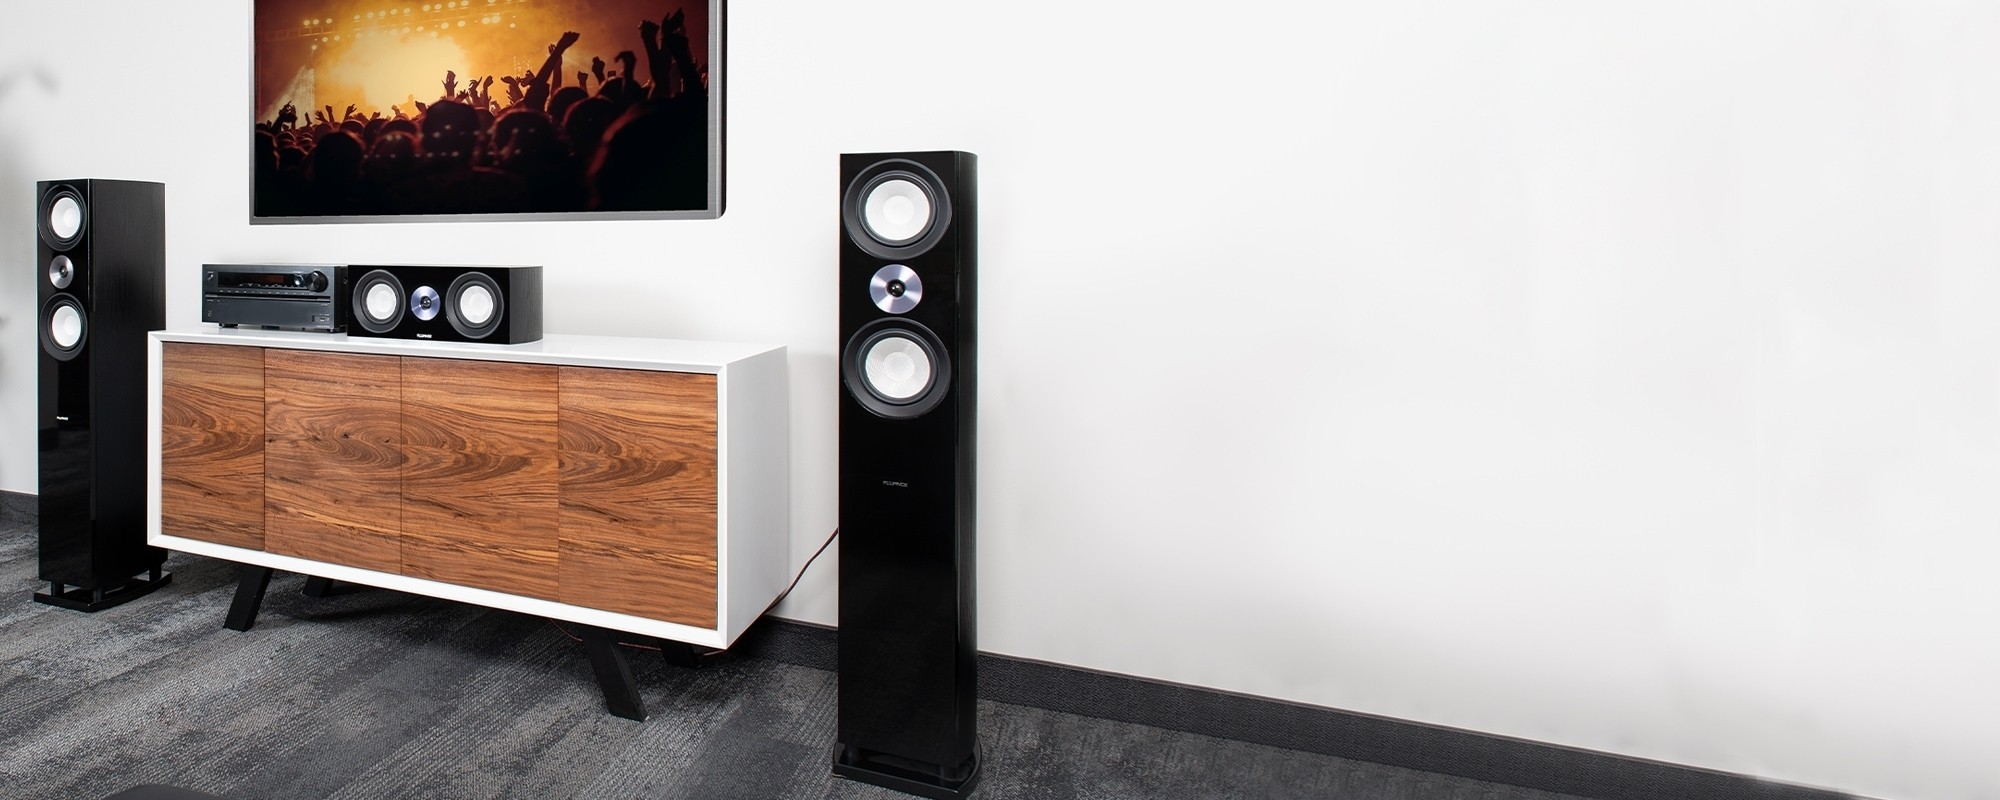 Reference Surround Sound Home Theater 5.0 Channel Speaker System with Bipolar Speakers  - Lifestyle Desktop